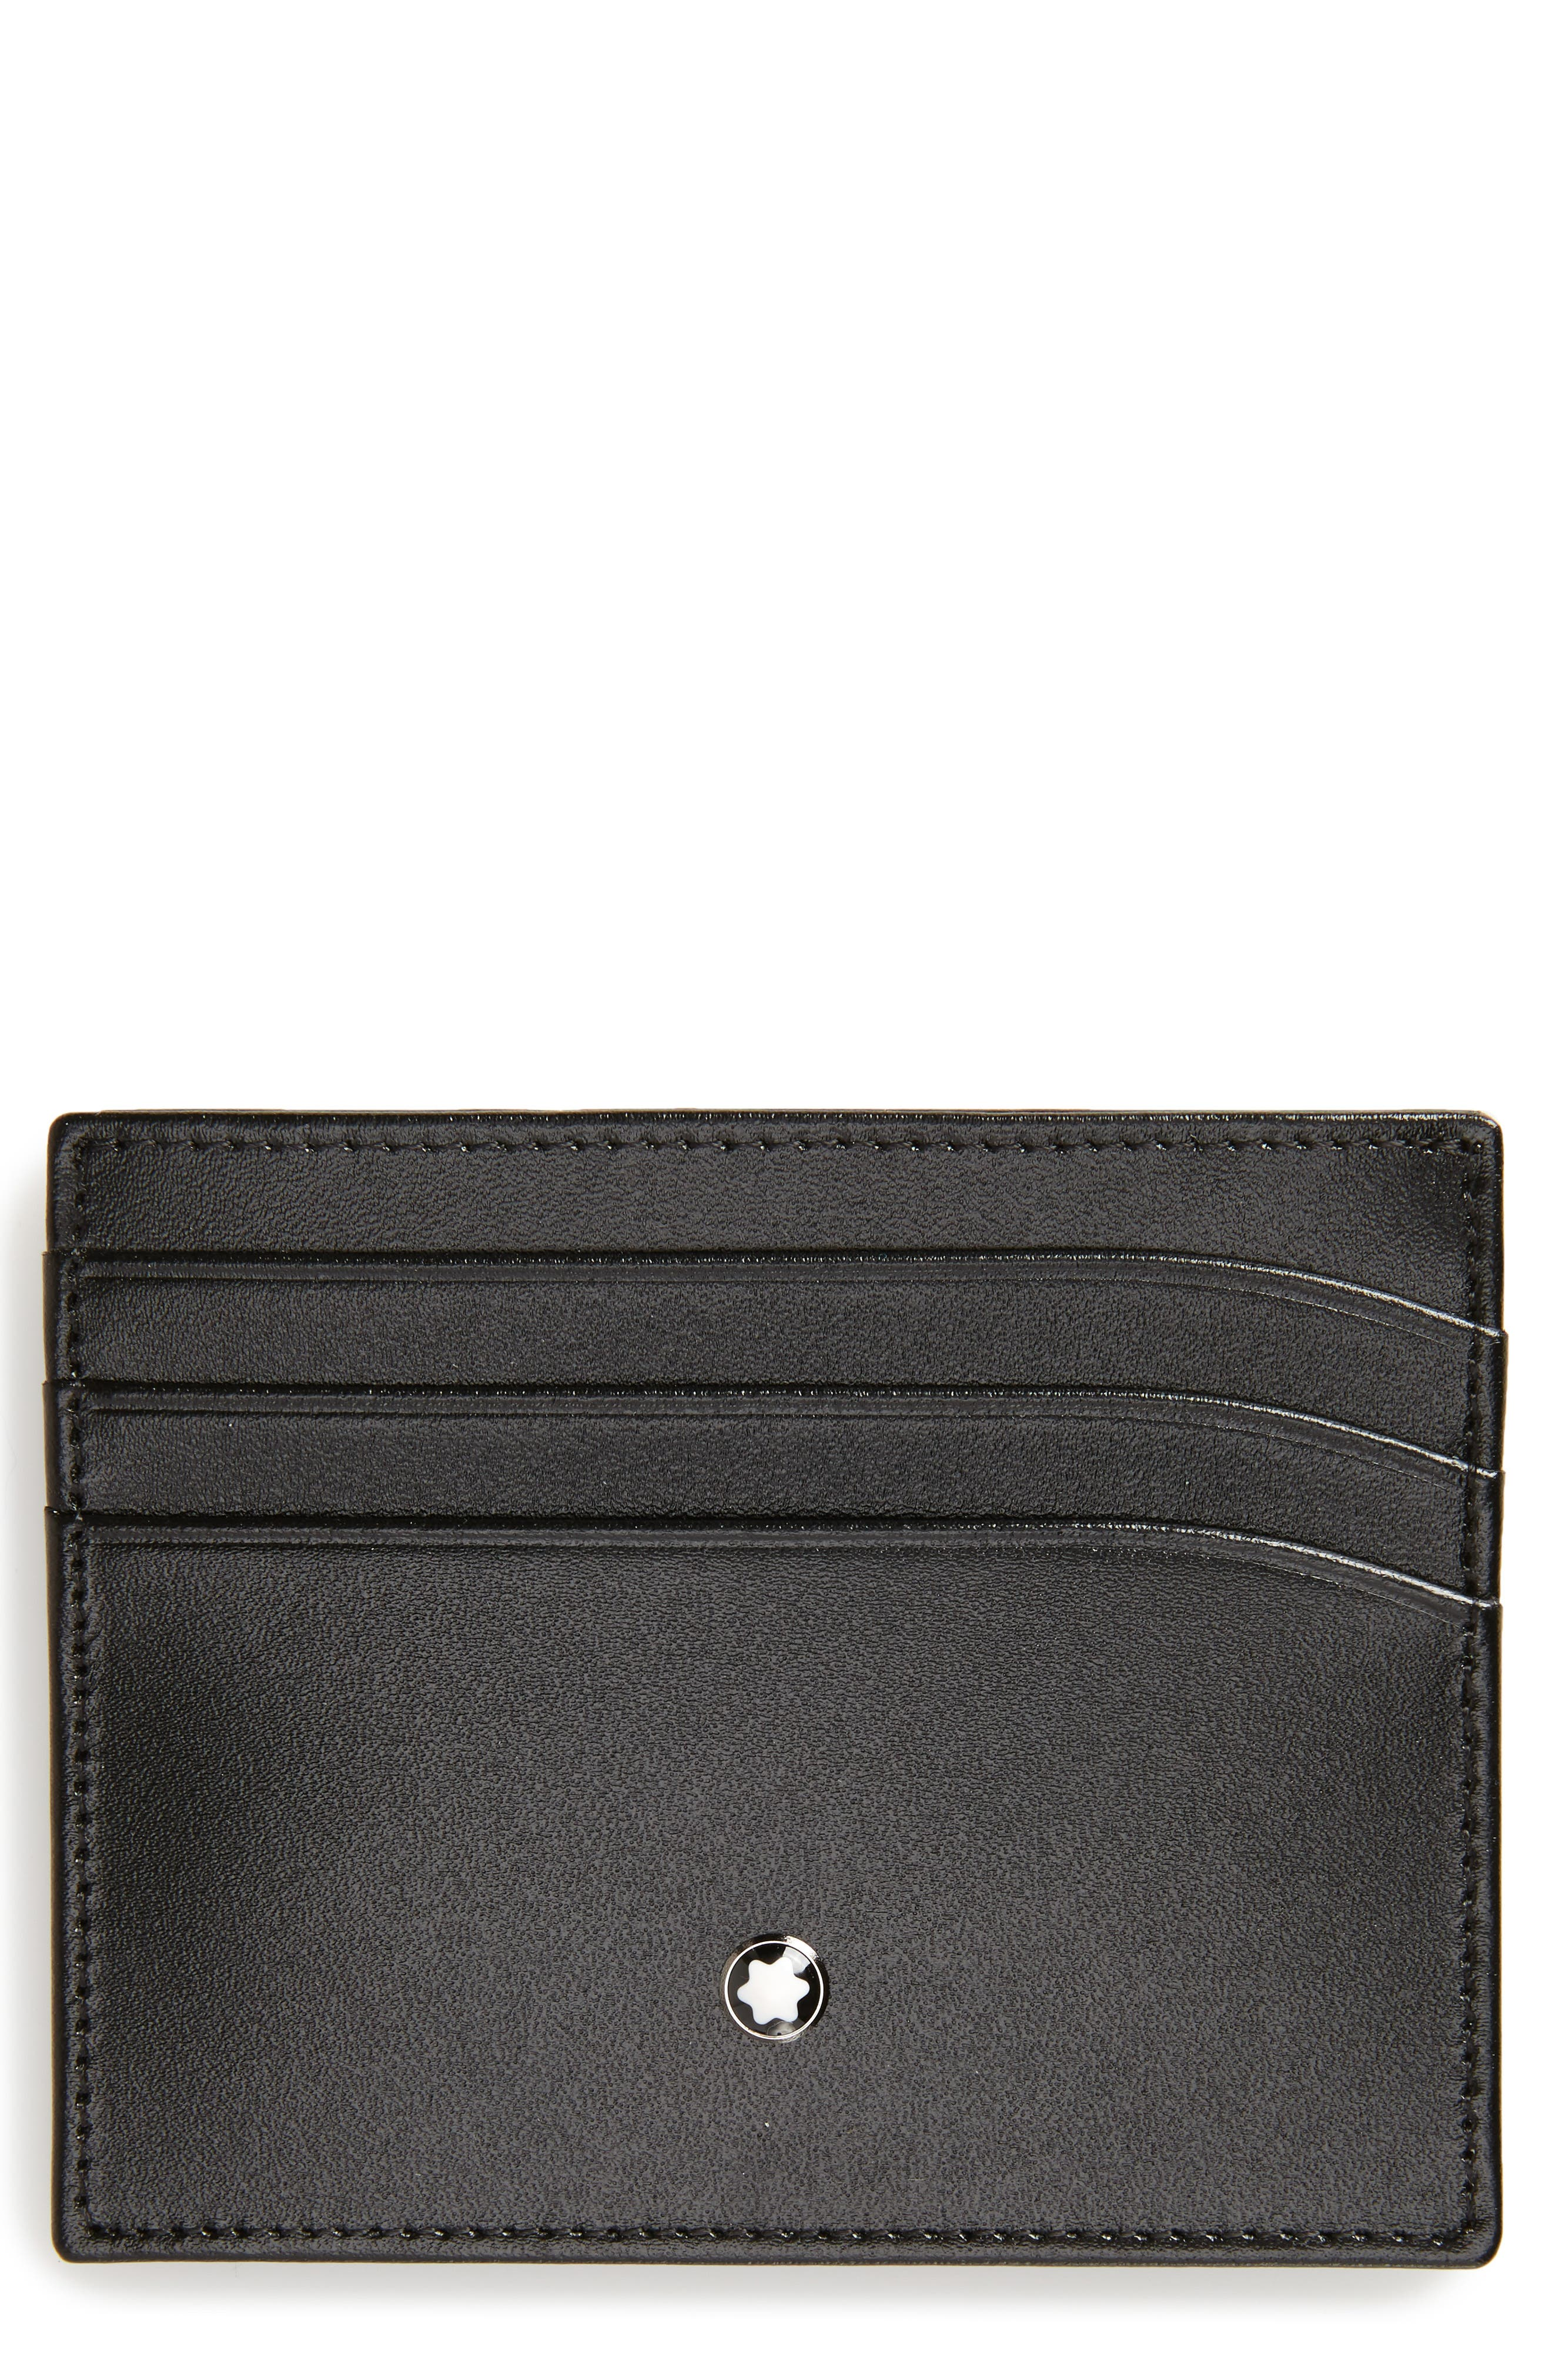 MONTBLANC, Meisterstück Leather Card Case, Main thumbnail 1, color, 001